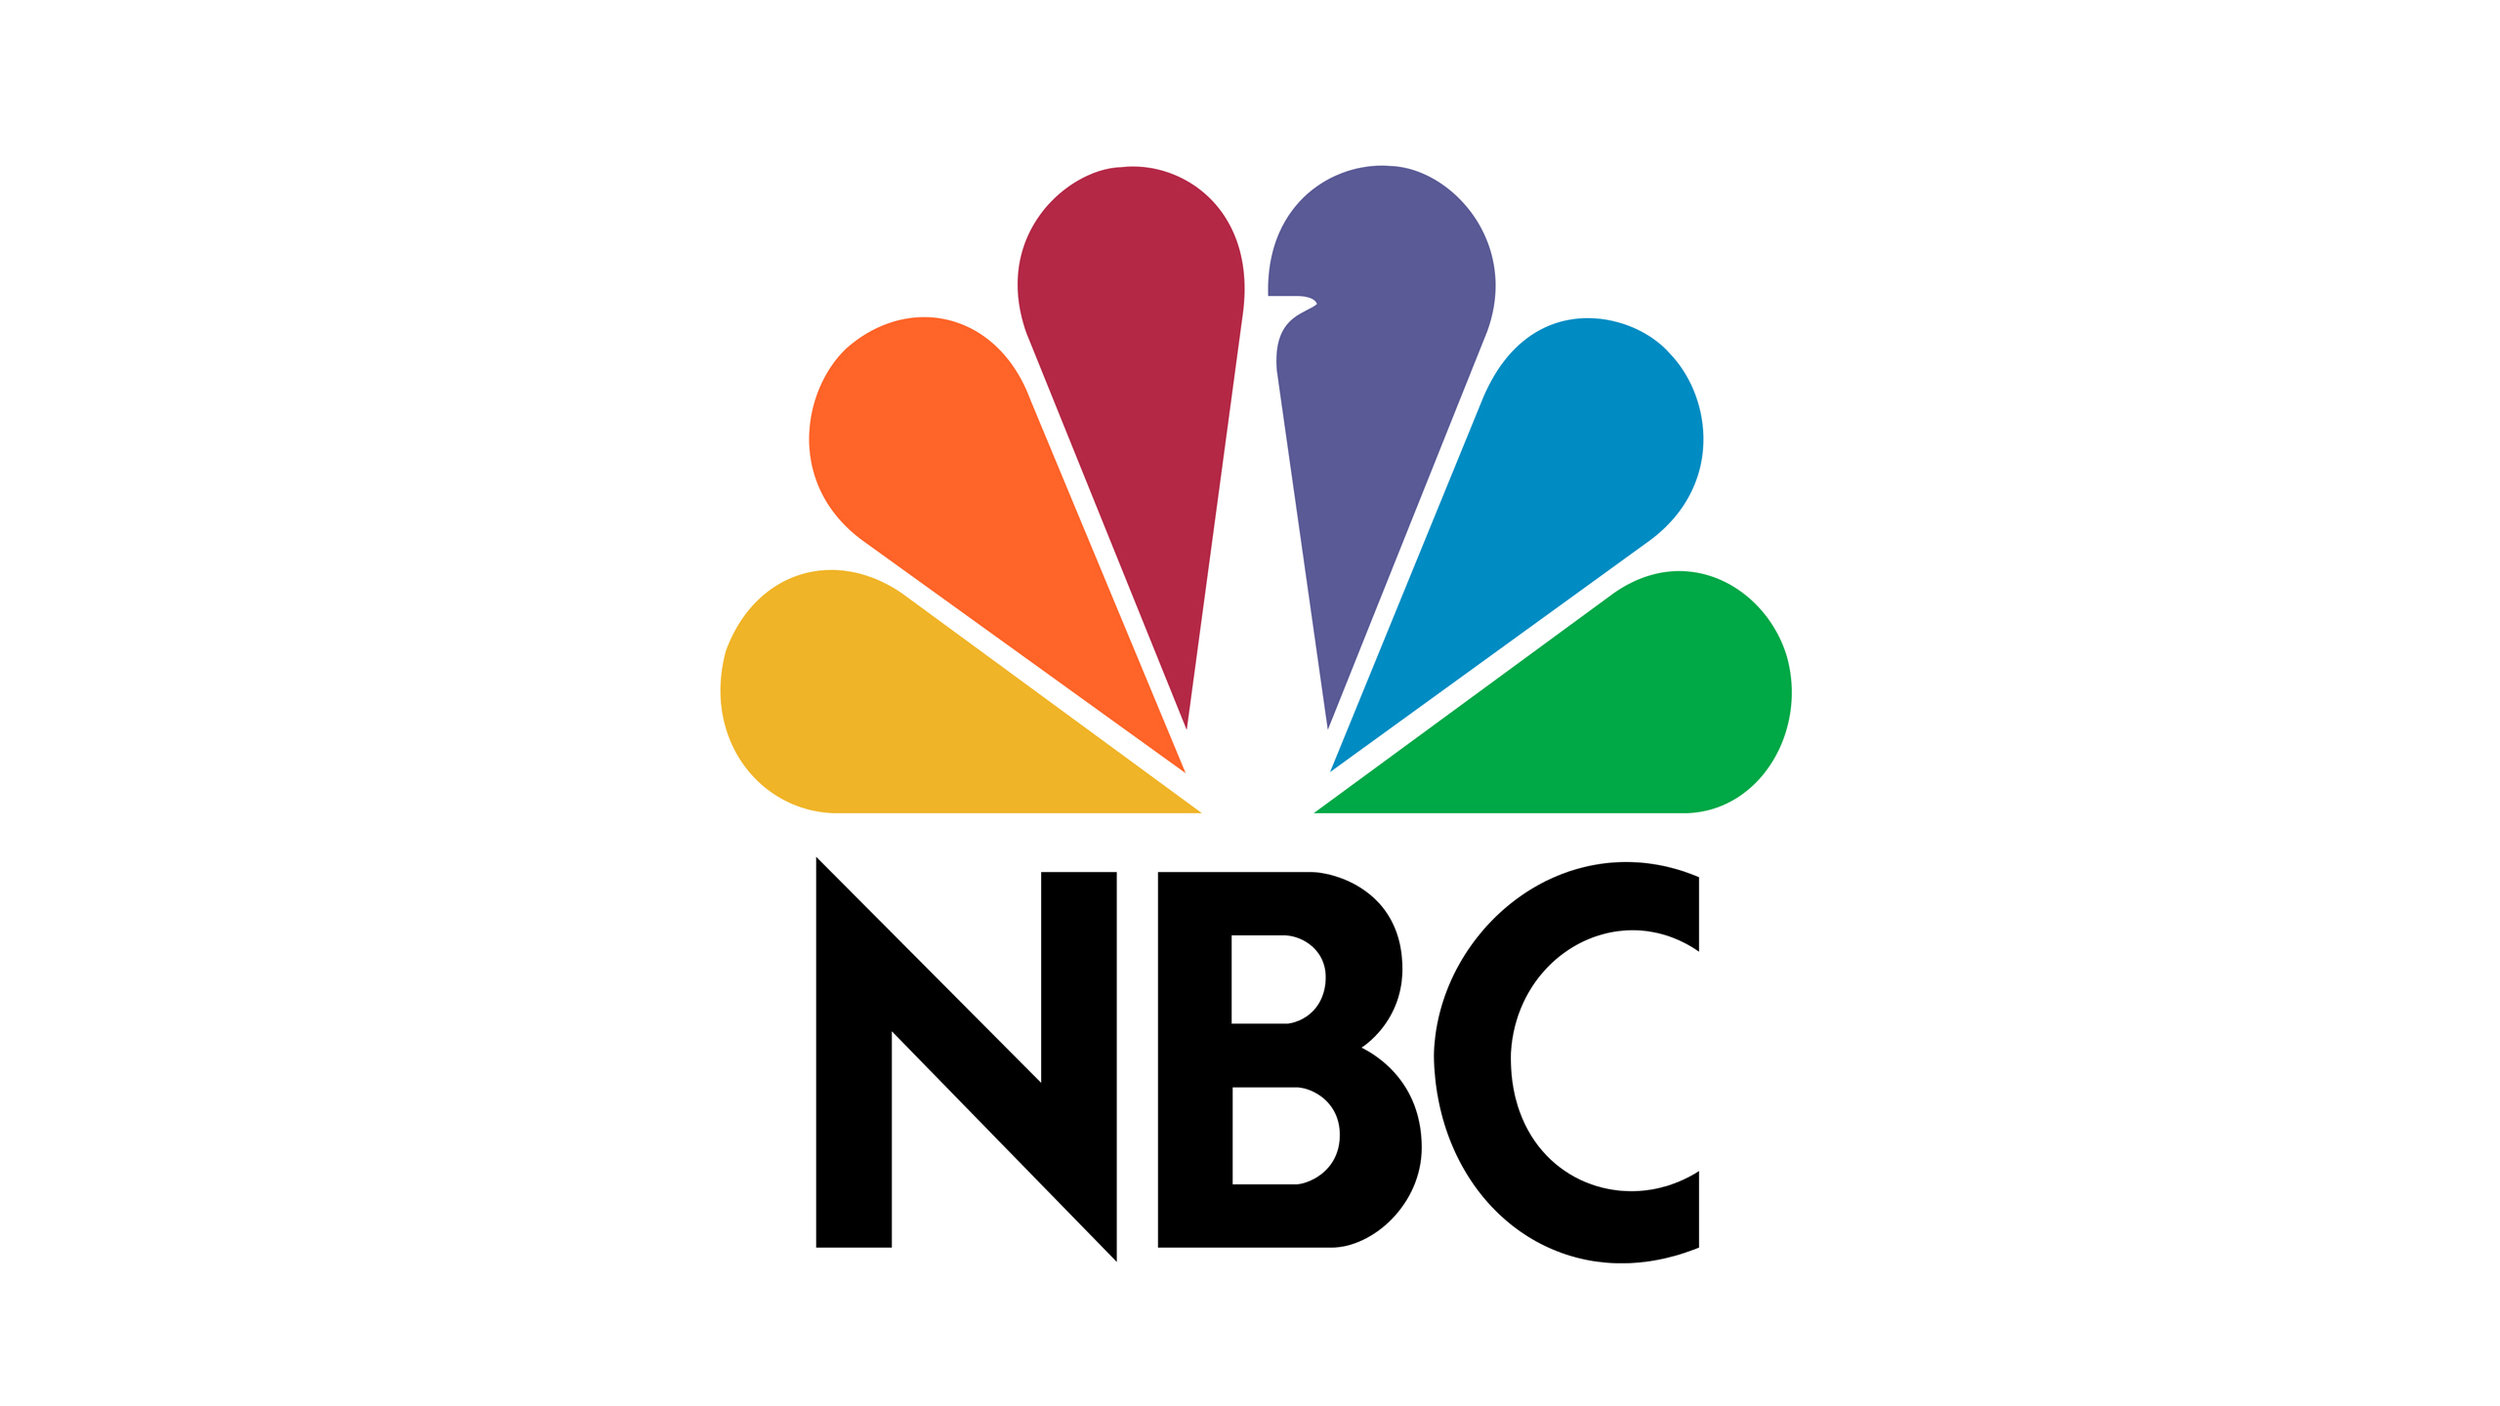 nbc-featured-image-2.jpg